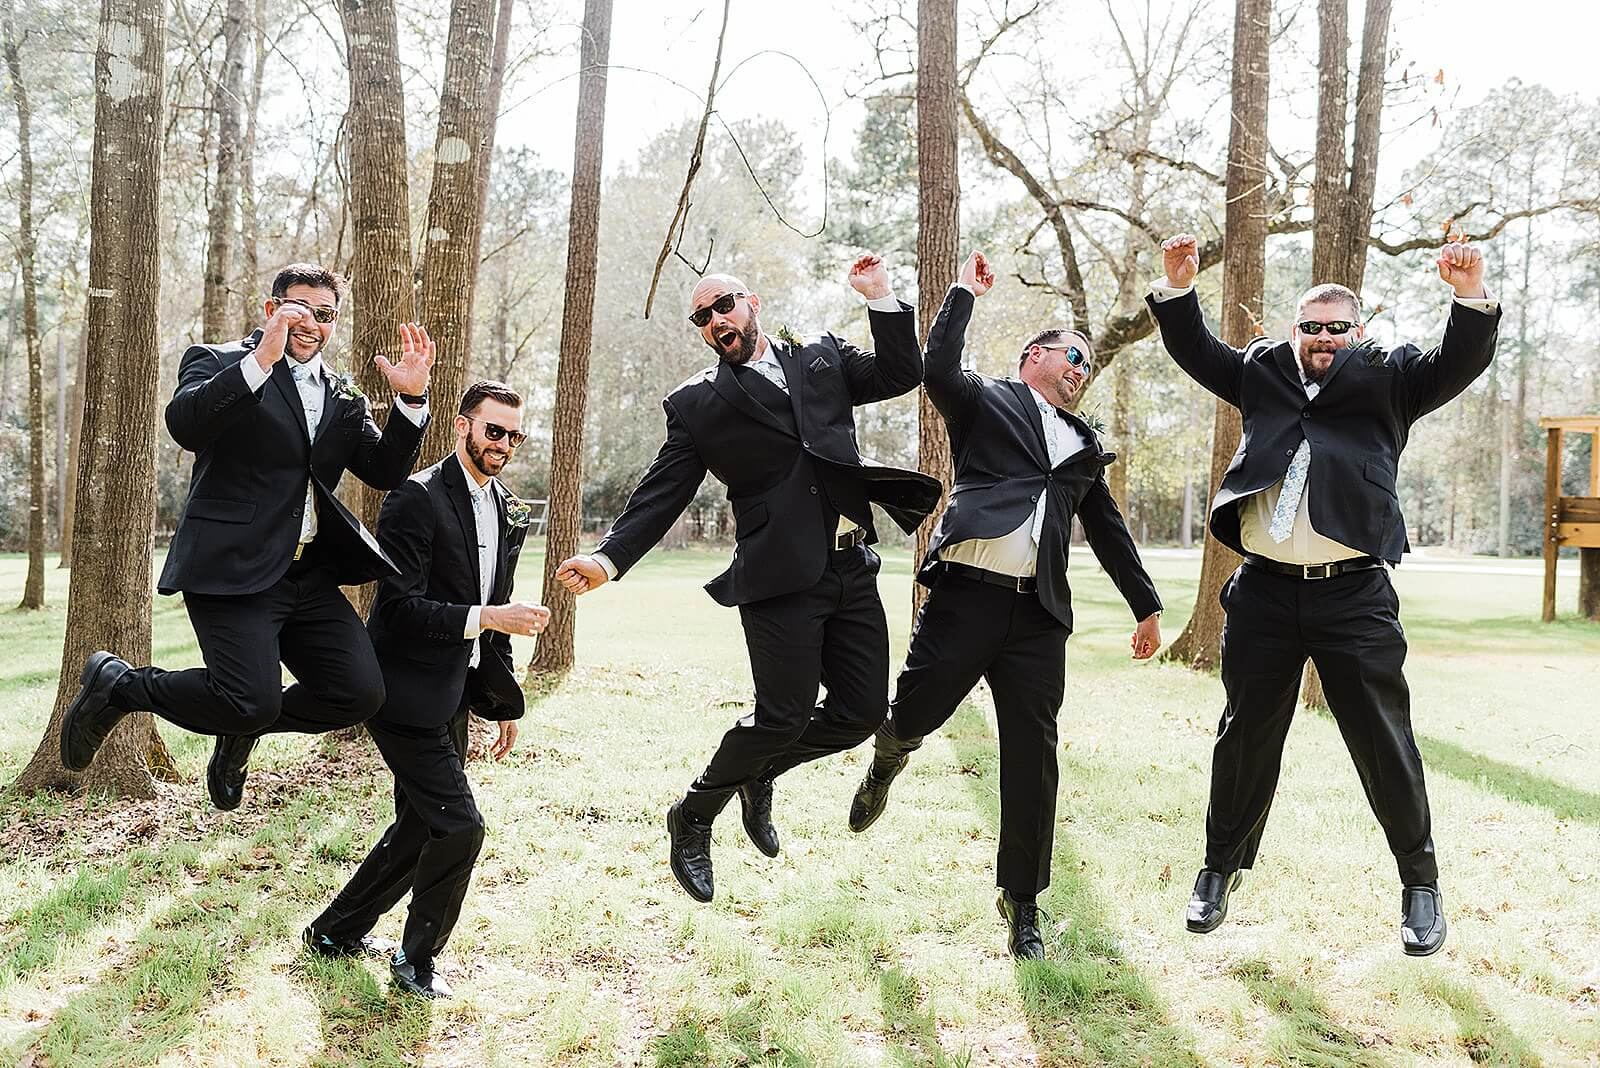 Excited groom and groomsmen jump in air at one of the unique wedding venues in Houston The Annex